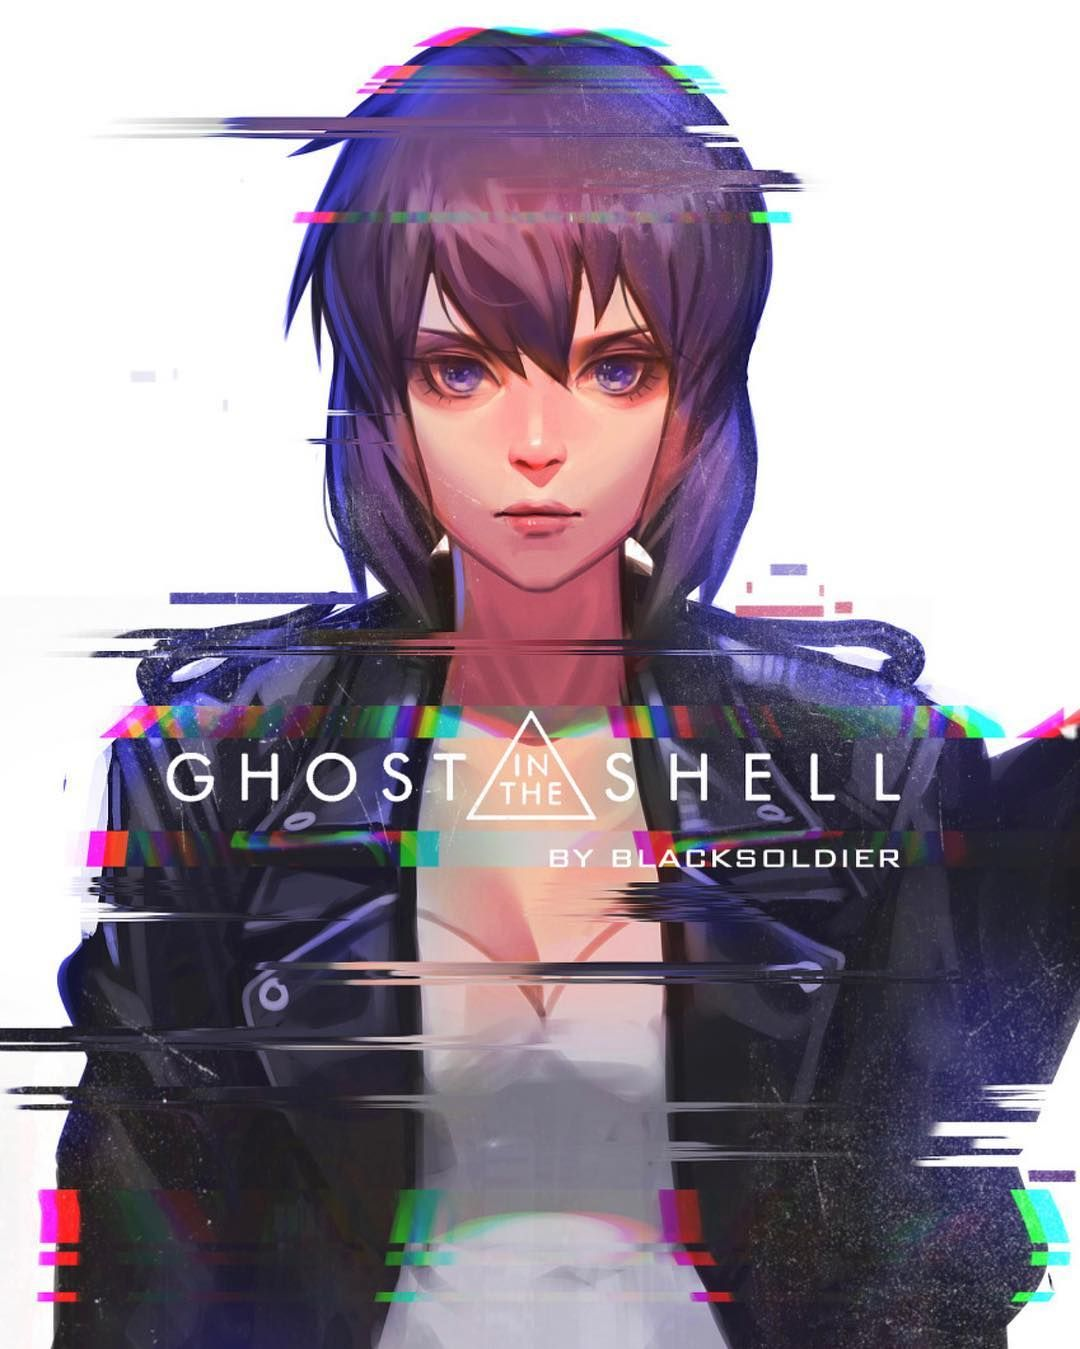 Cyberpunk Neon Urban On Instagram Motoko And Batou Who Is Your Favorite 1 Or 2 Ghost In The Shell Art By Blac Ghost In The Shell Anime Cyberpunk Art